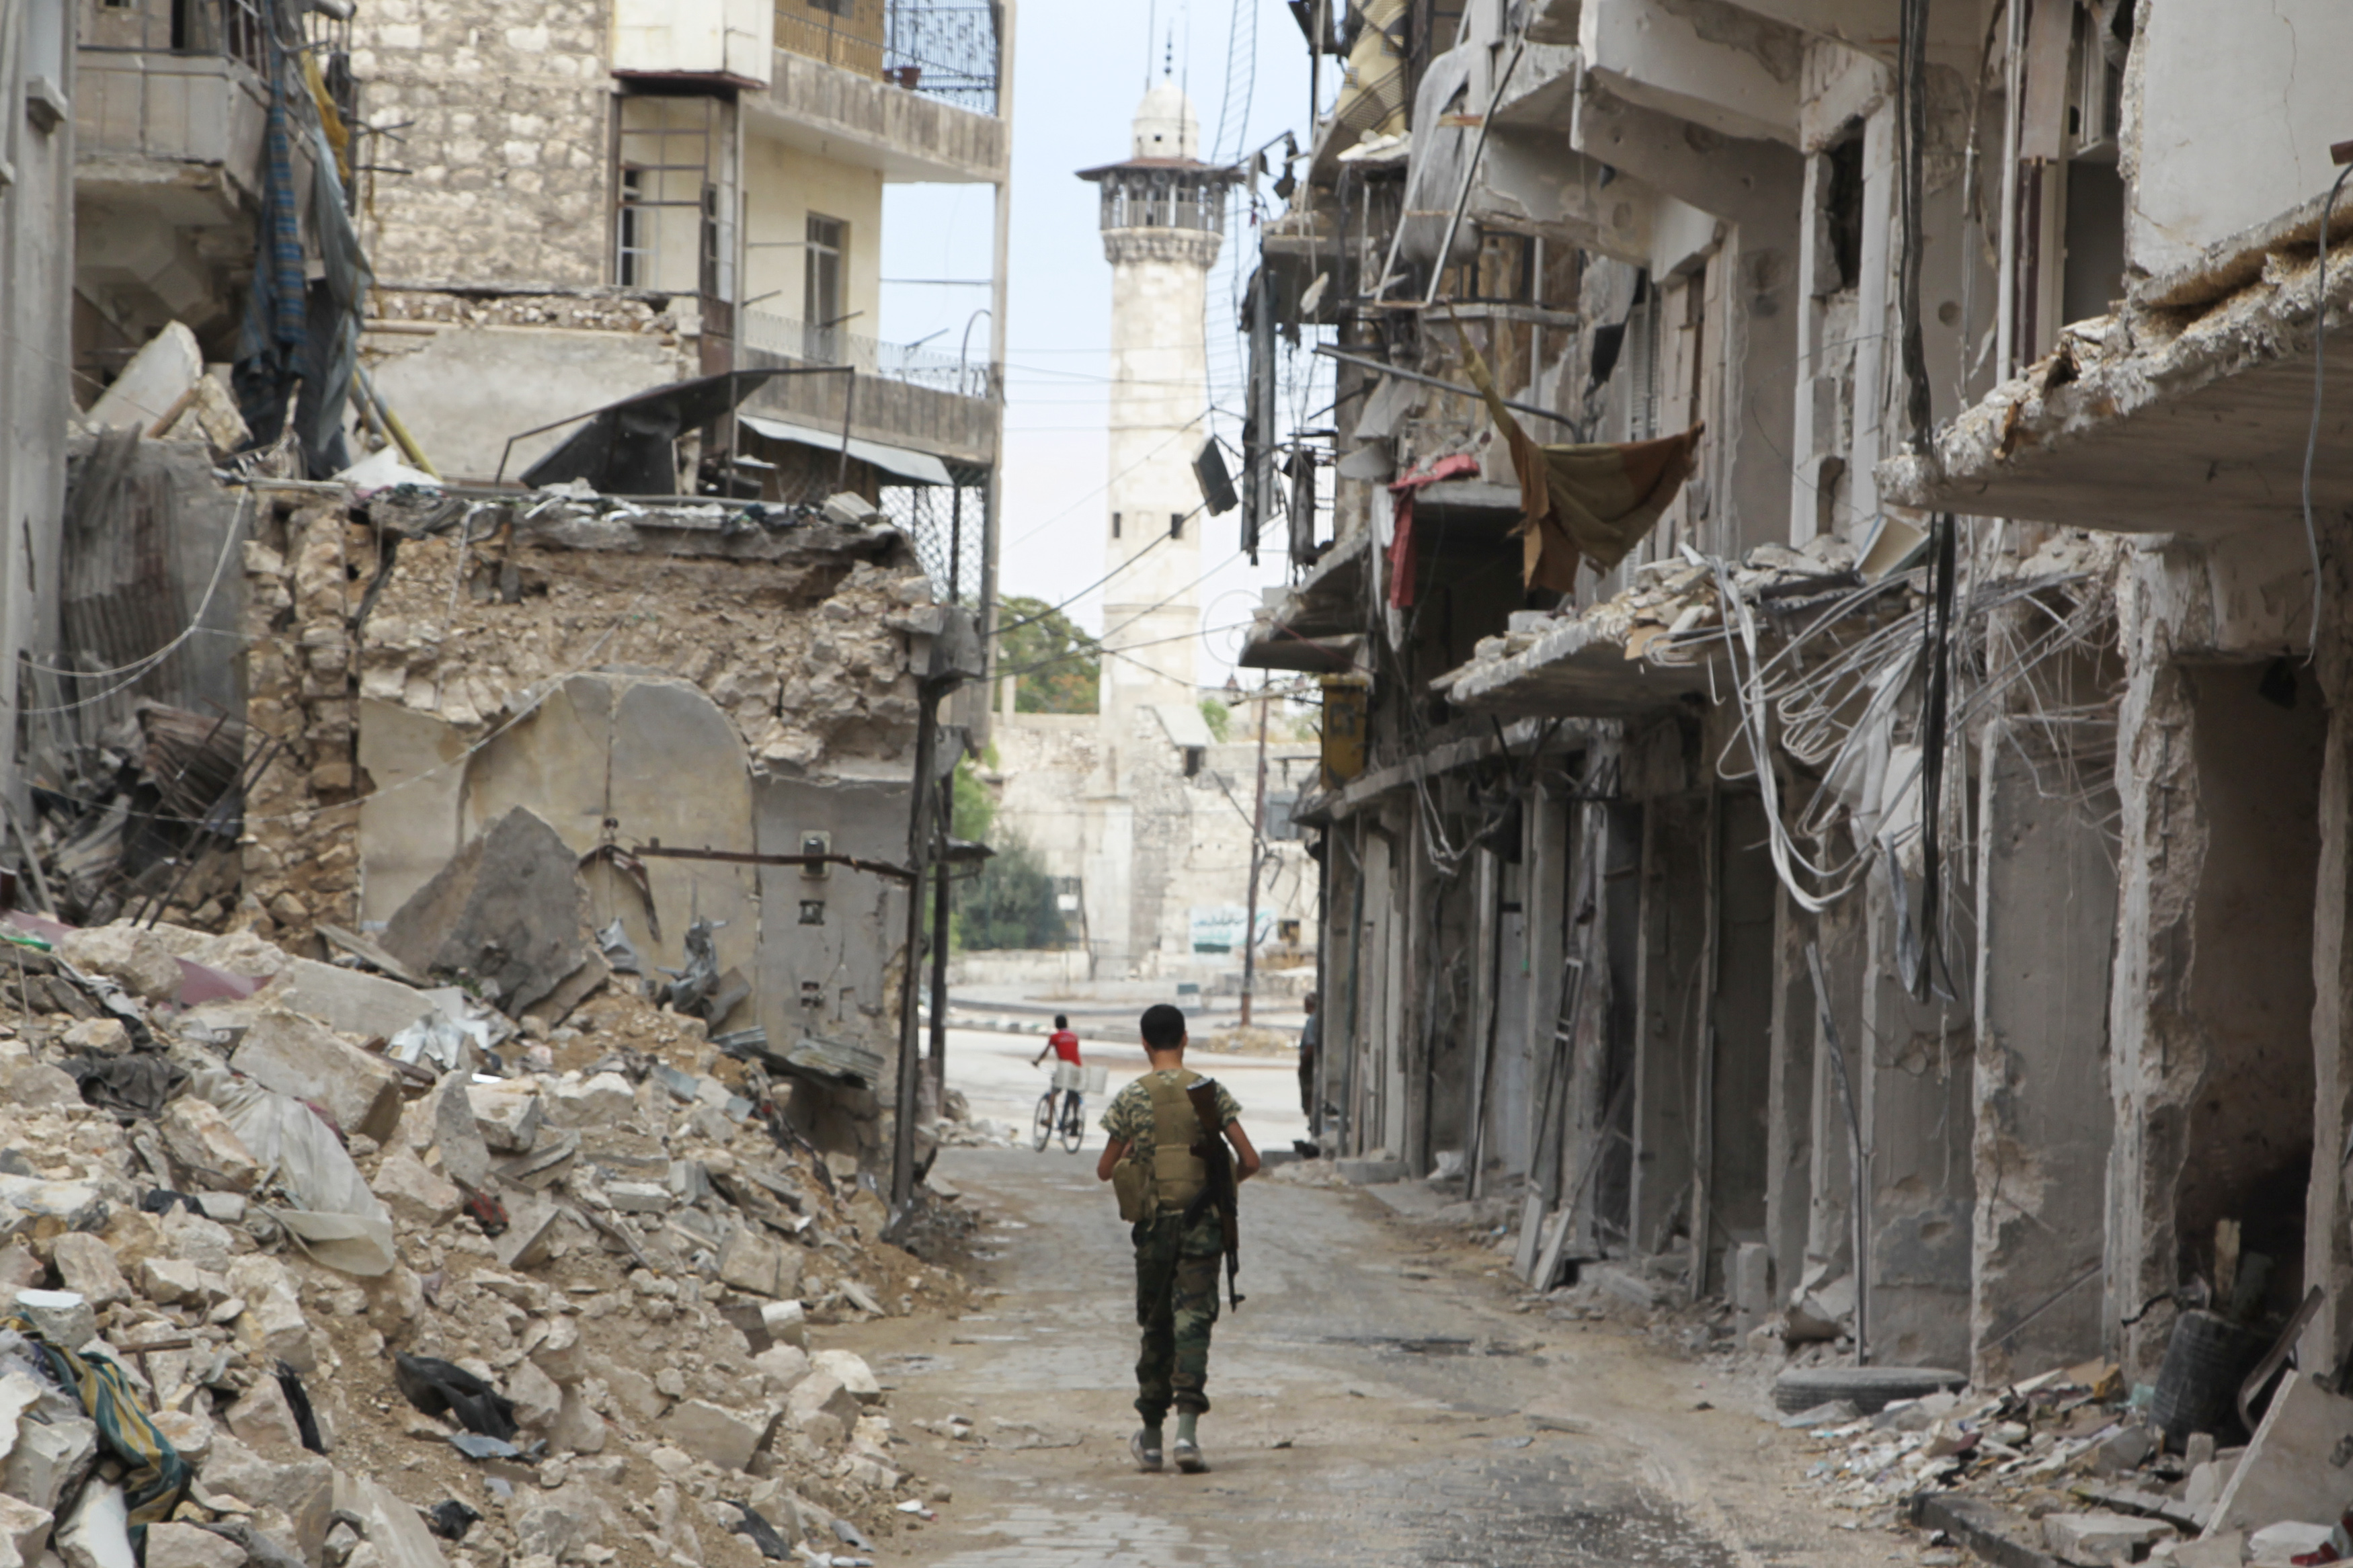 Aleppo Residents Start to Escape from Trapped Neighborhoods Through Safe Passage